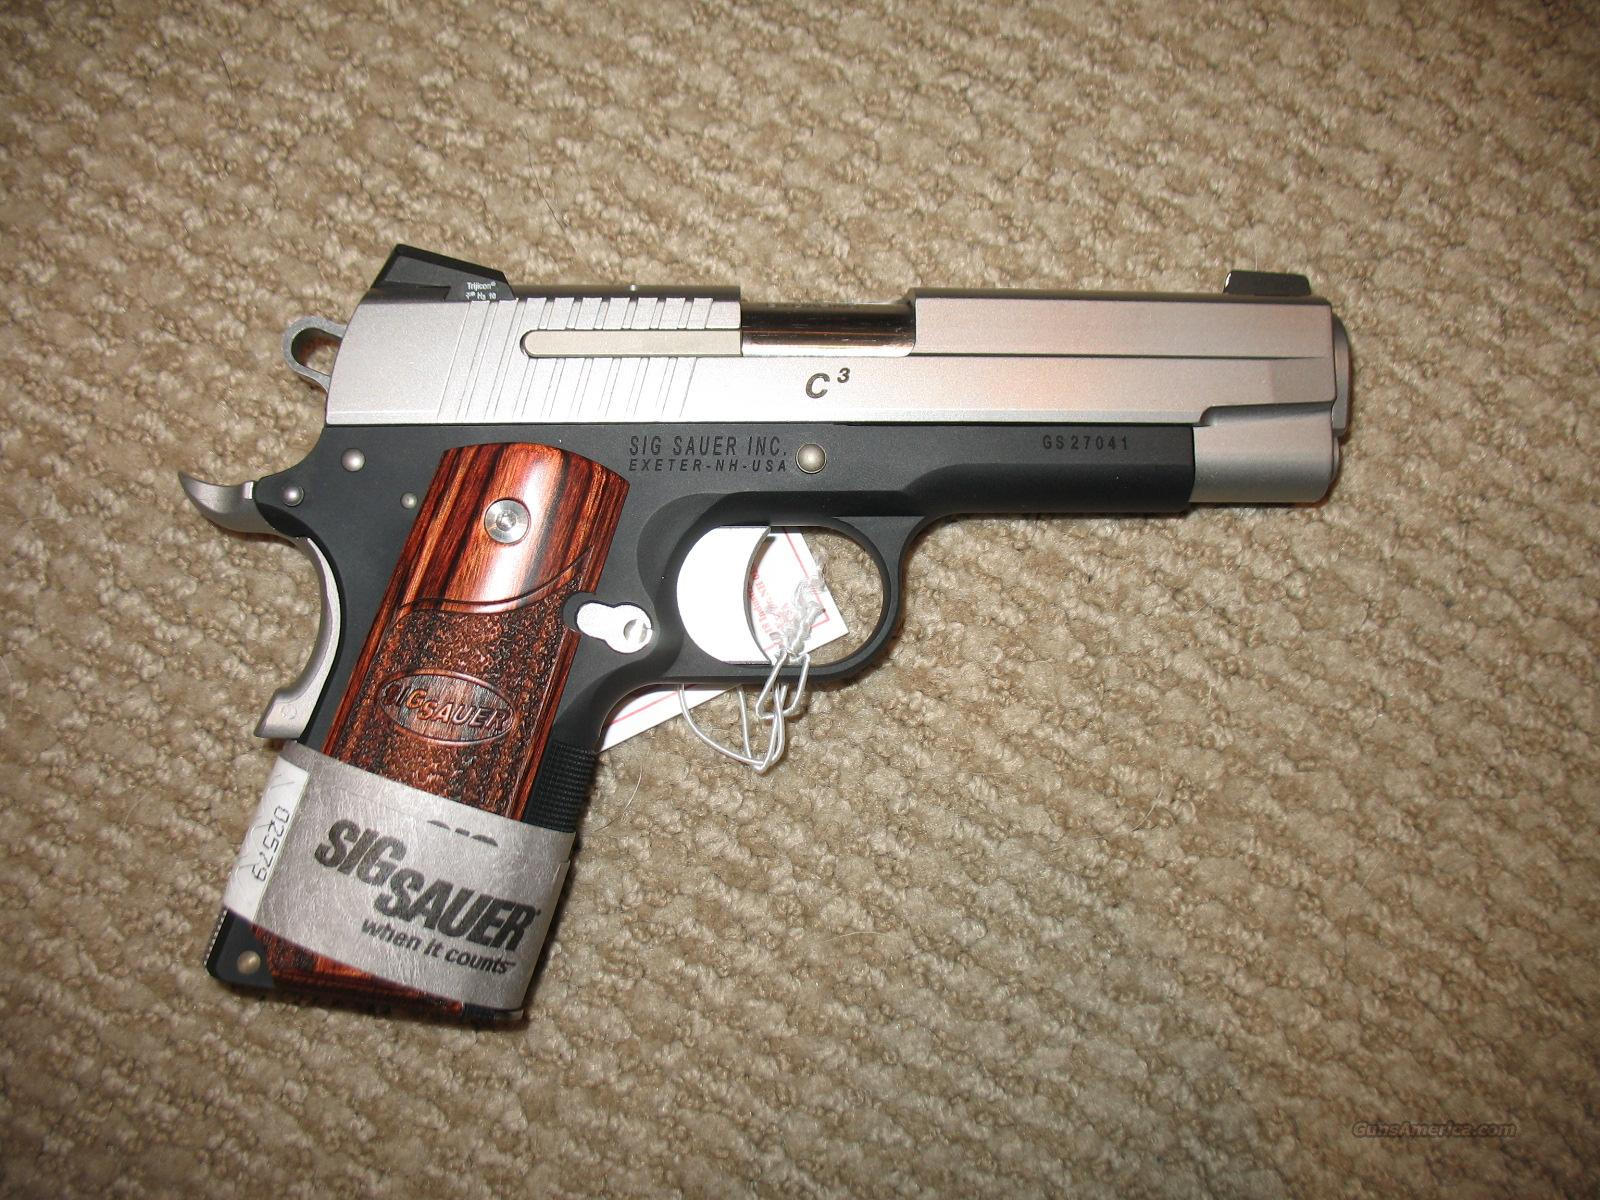 SIG Sauer 1911 C3 .45 ACP Two-Tone SLITE w/ (2) 7rd Magazines  Guns > Pistols > Sig - Sauer/Sigarms Pistols > 1911